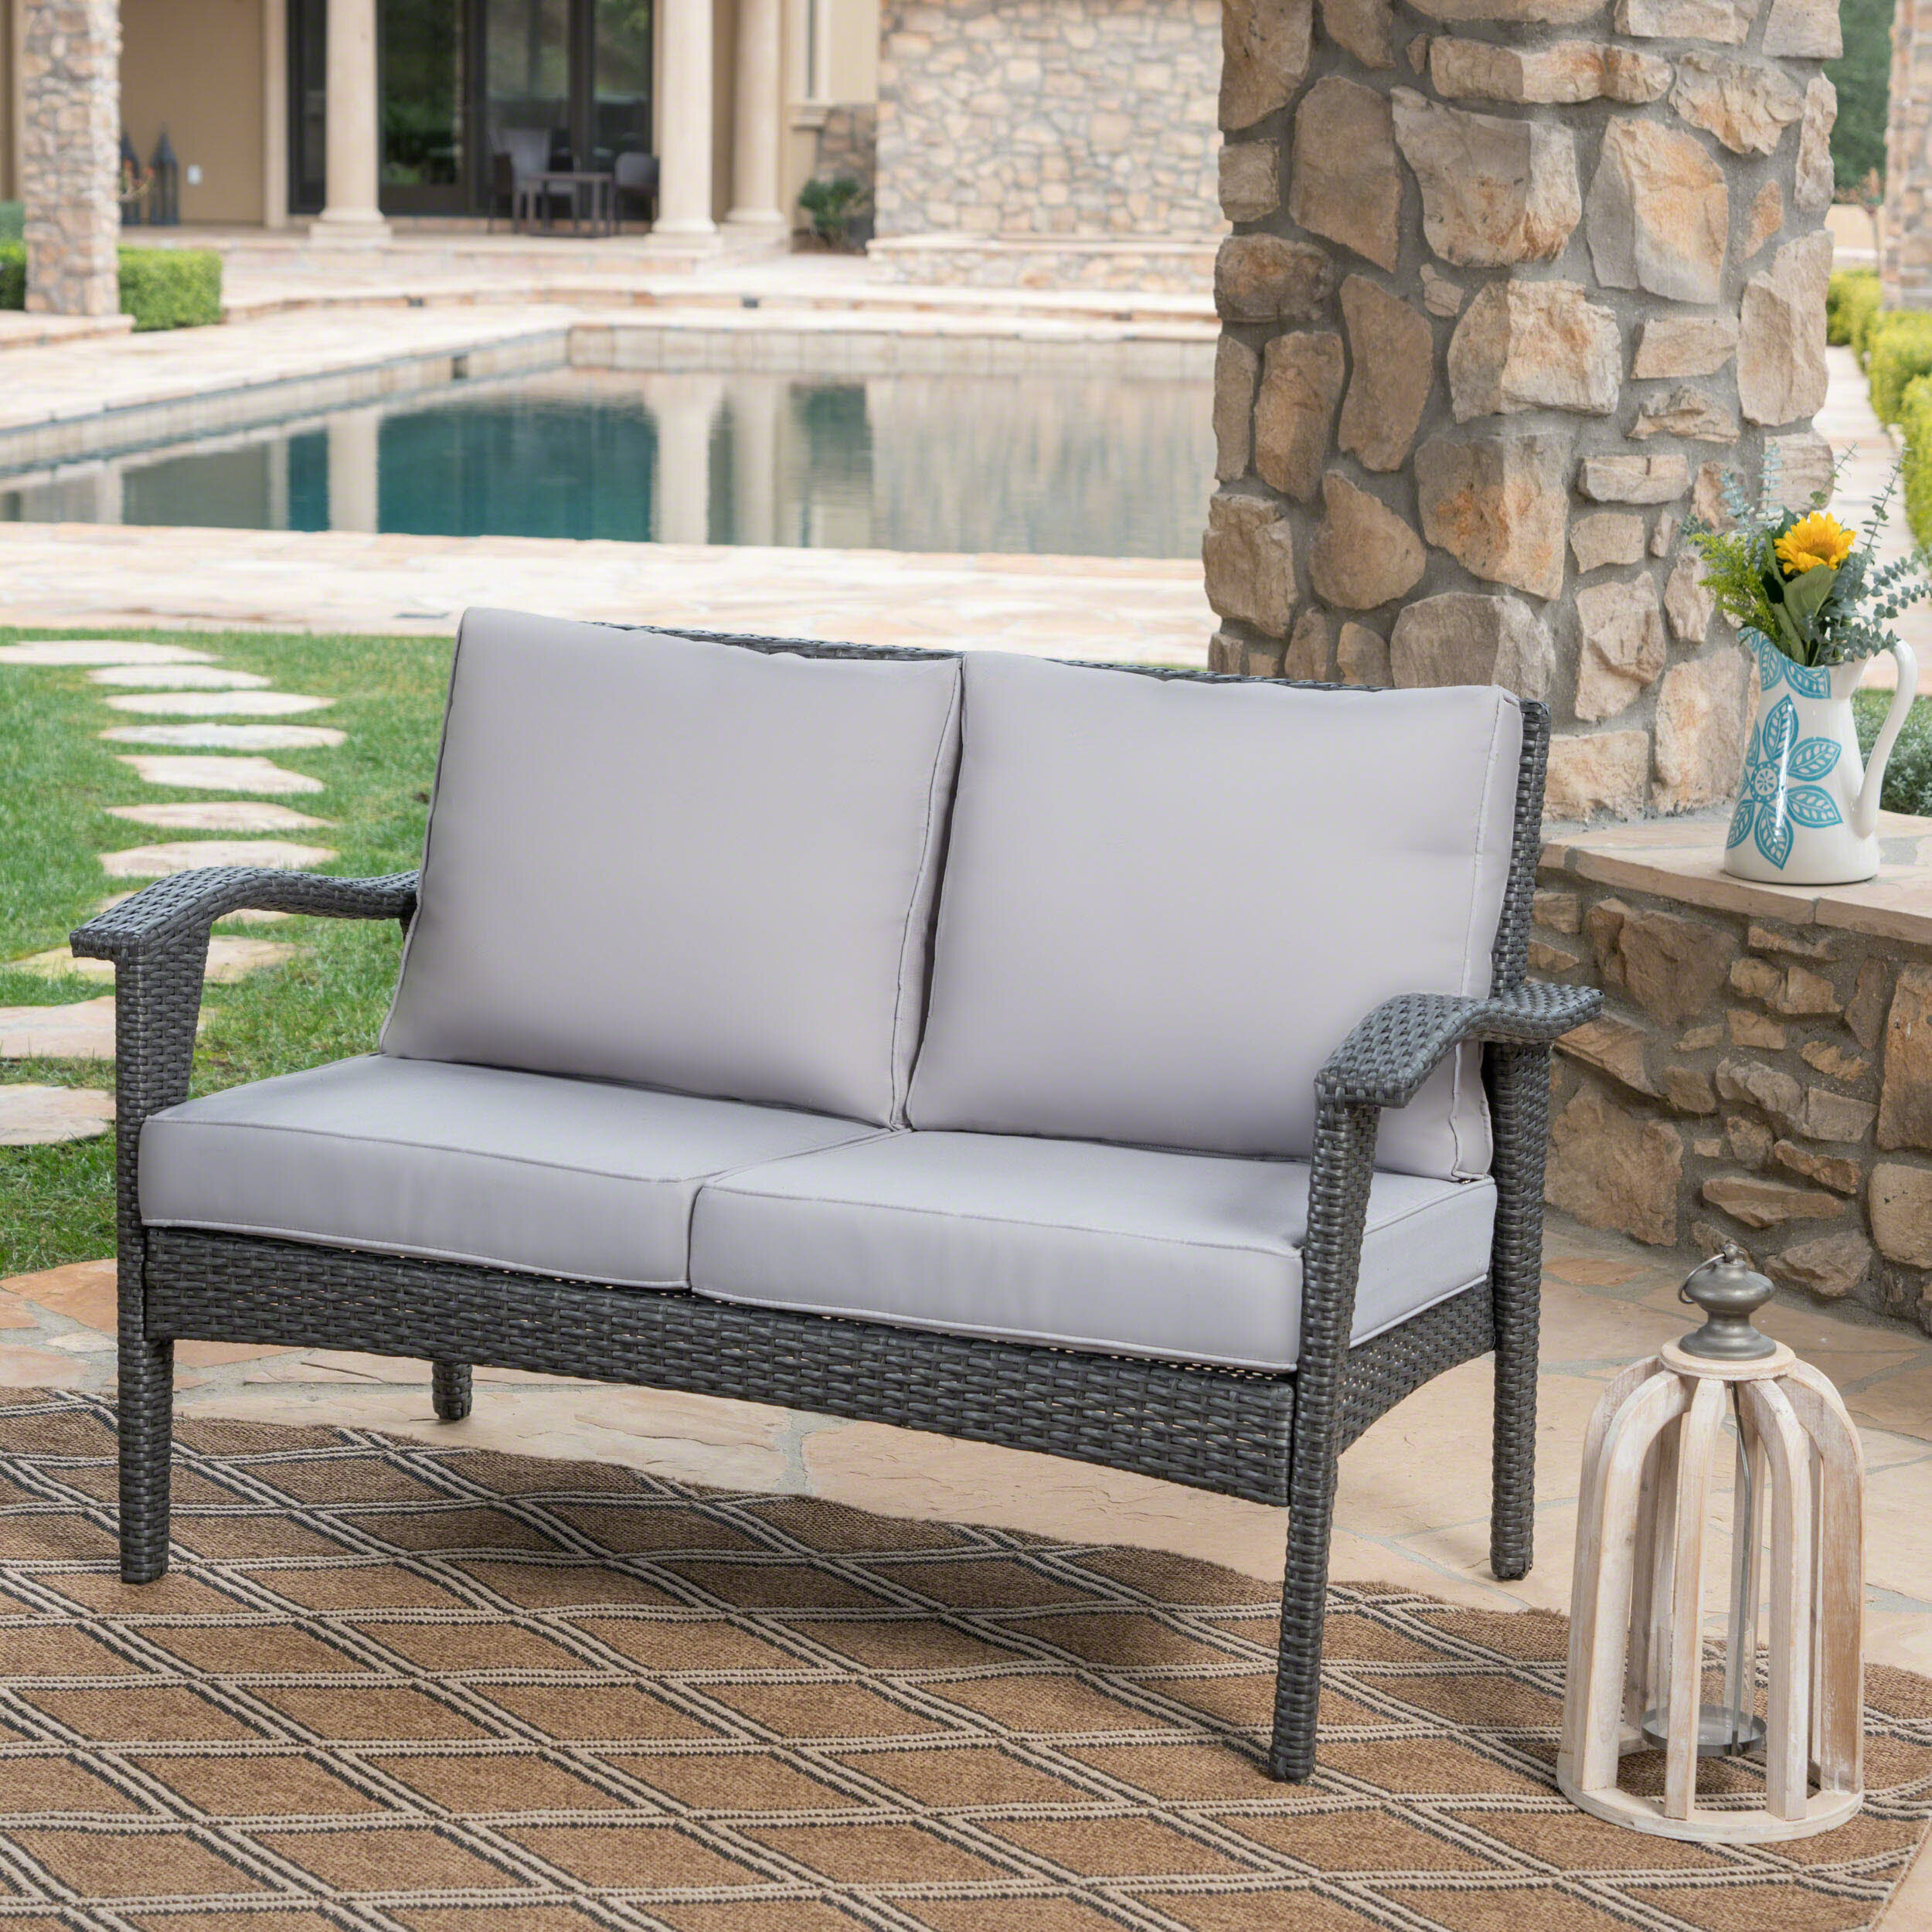 decoration about loveseat remodel patio cushions home with planner canada rustic